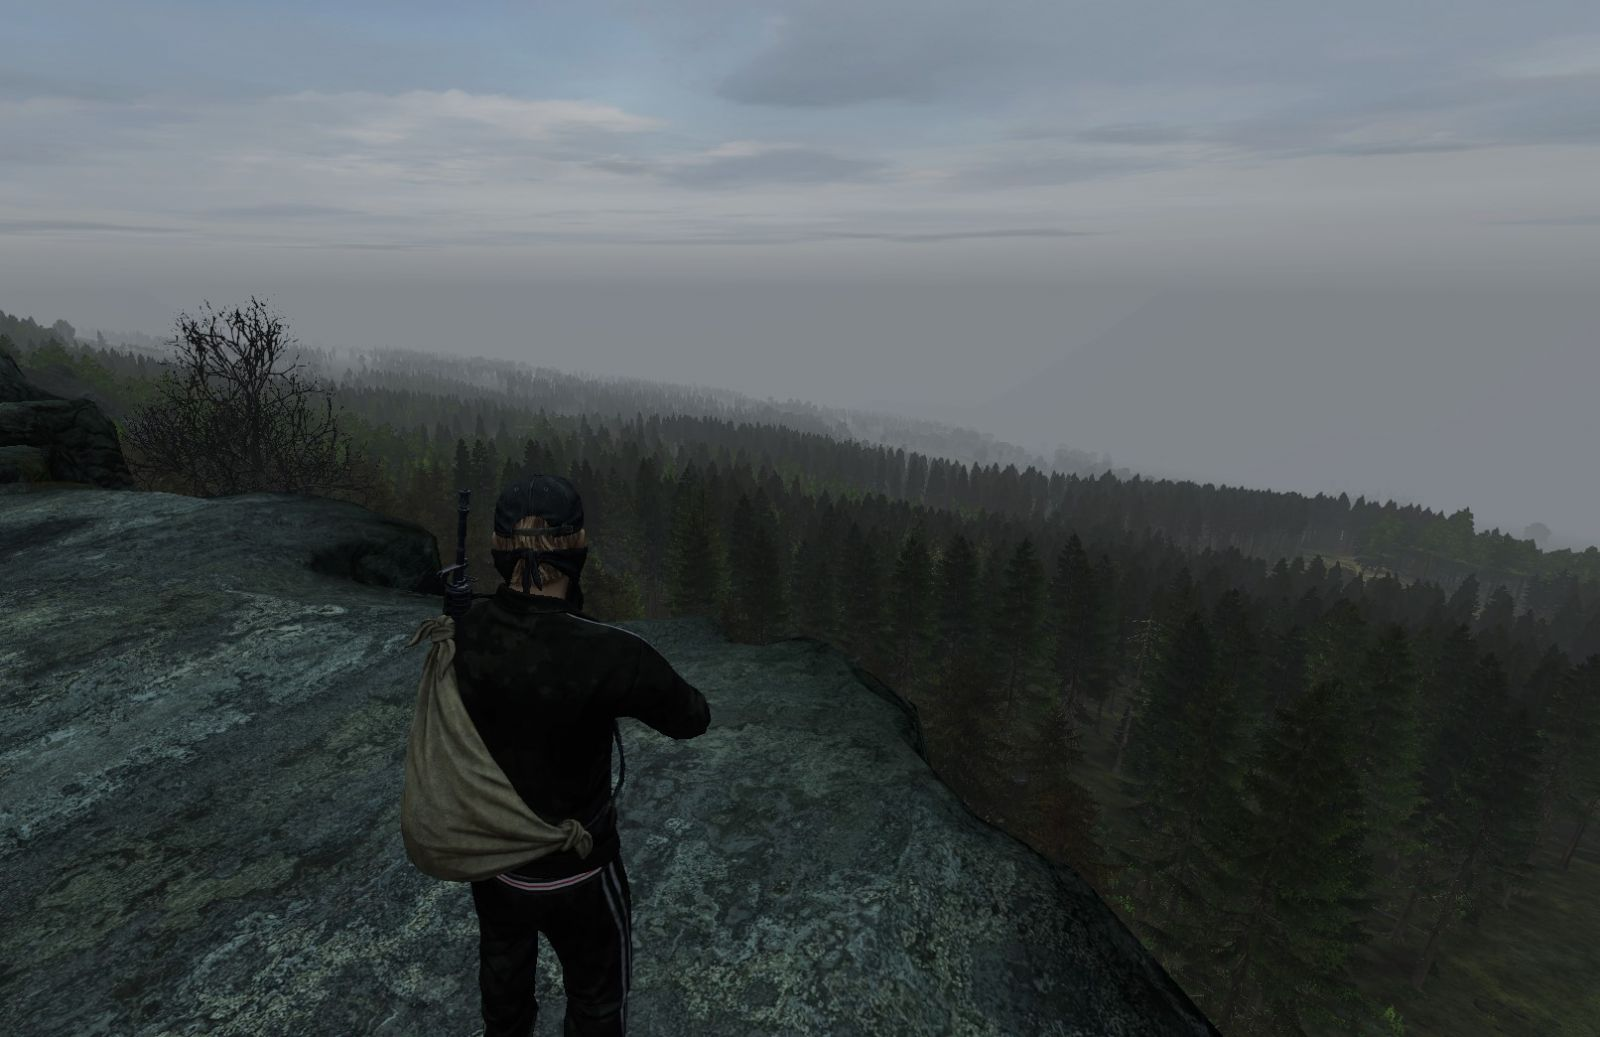 Kyle admiring the view with his new friend Panzer <3